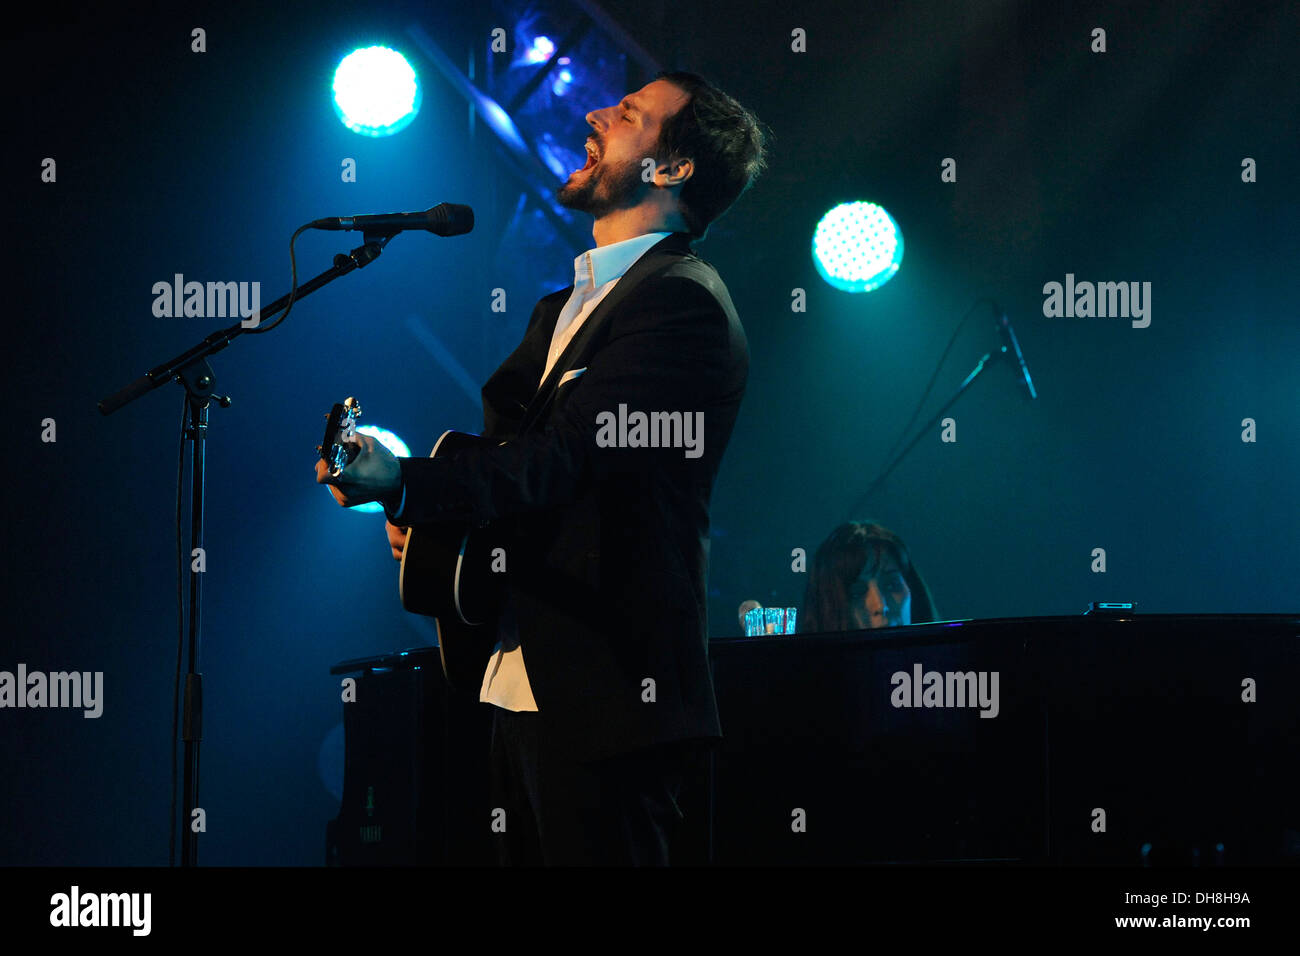 Raine Maida Stock Photos Amp Raine Maida Stock Images Alamy